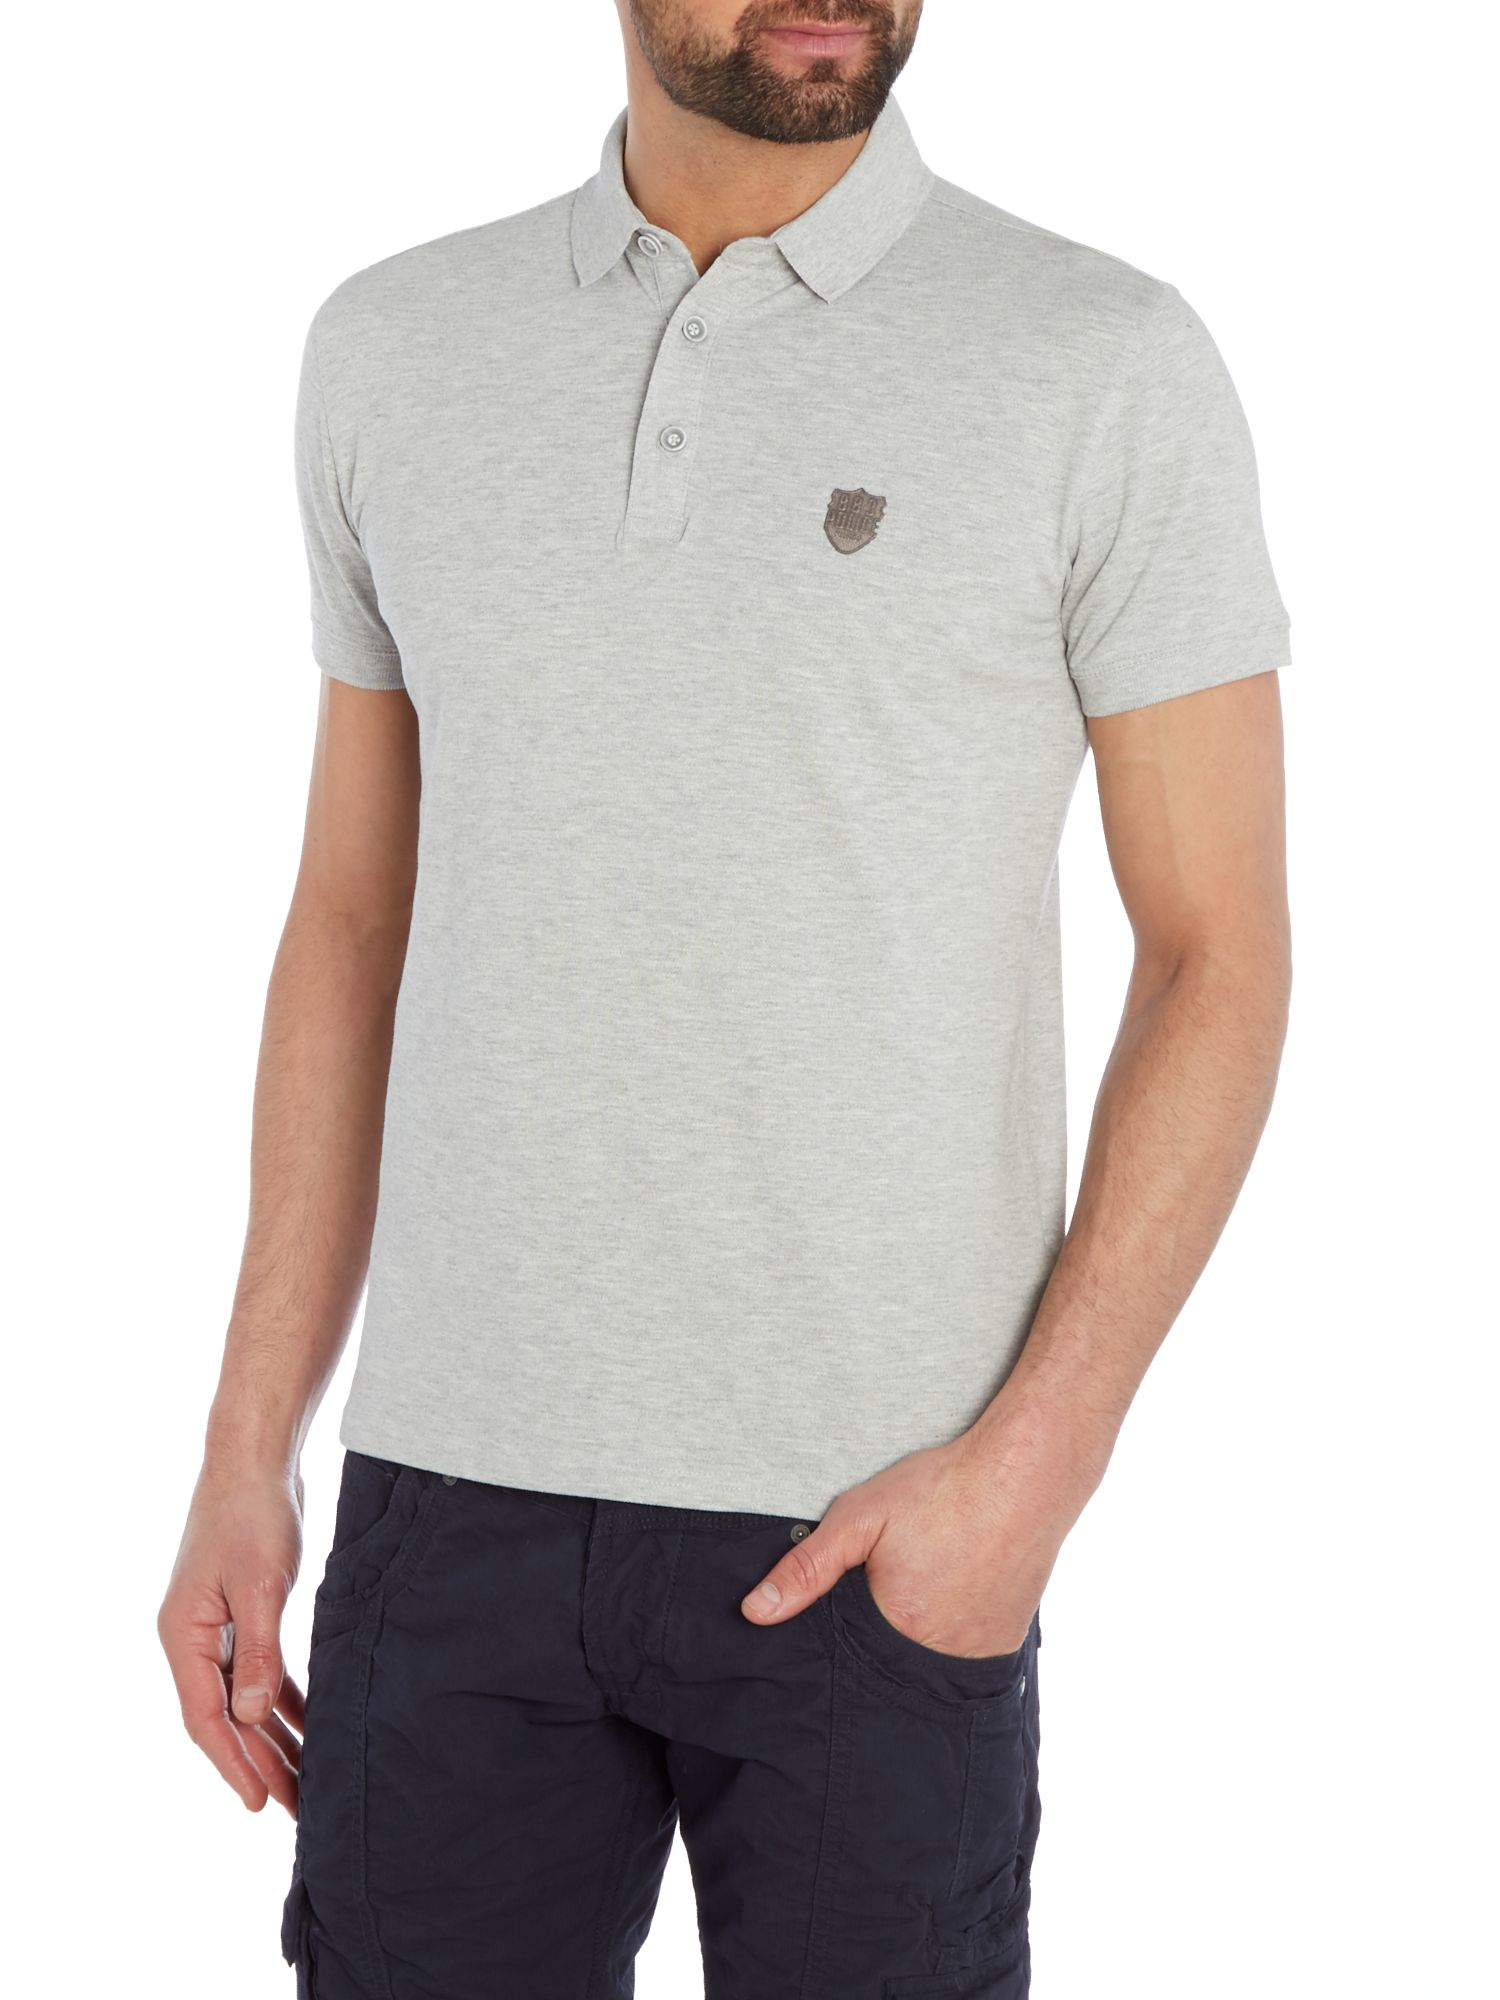 Lyst 883 police mellor polo shirt in gray for men for Embroidered police polo shirts